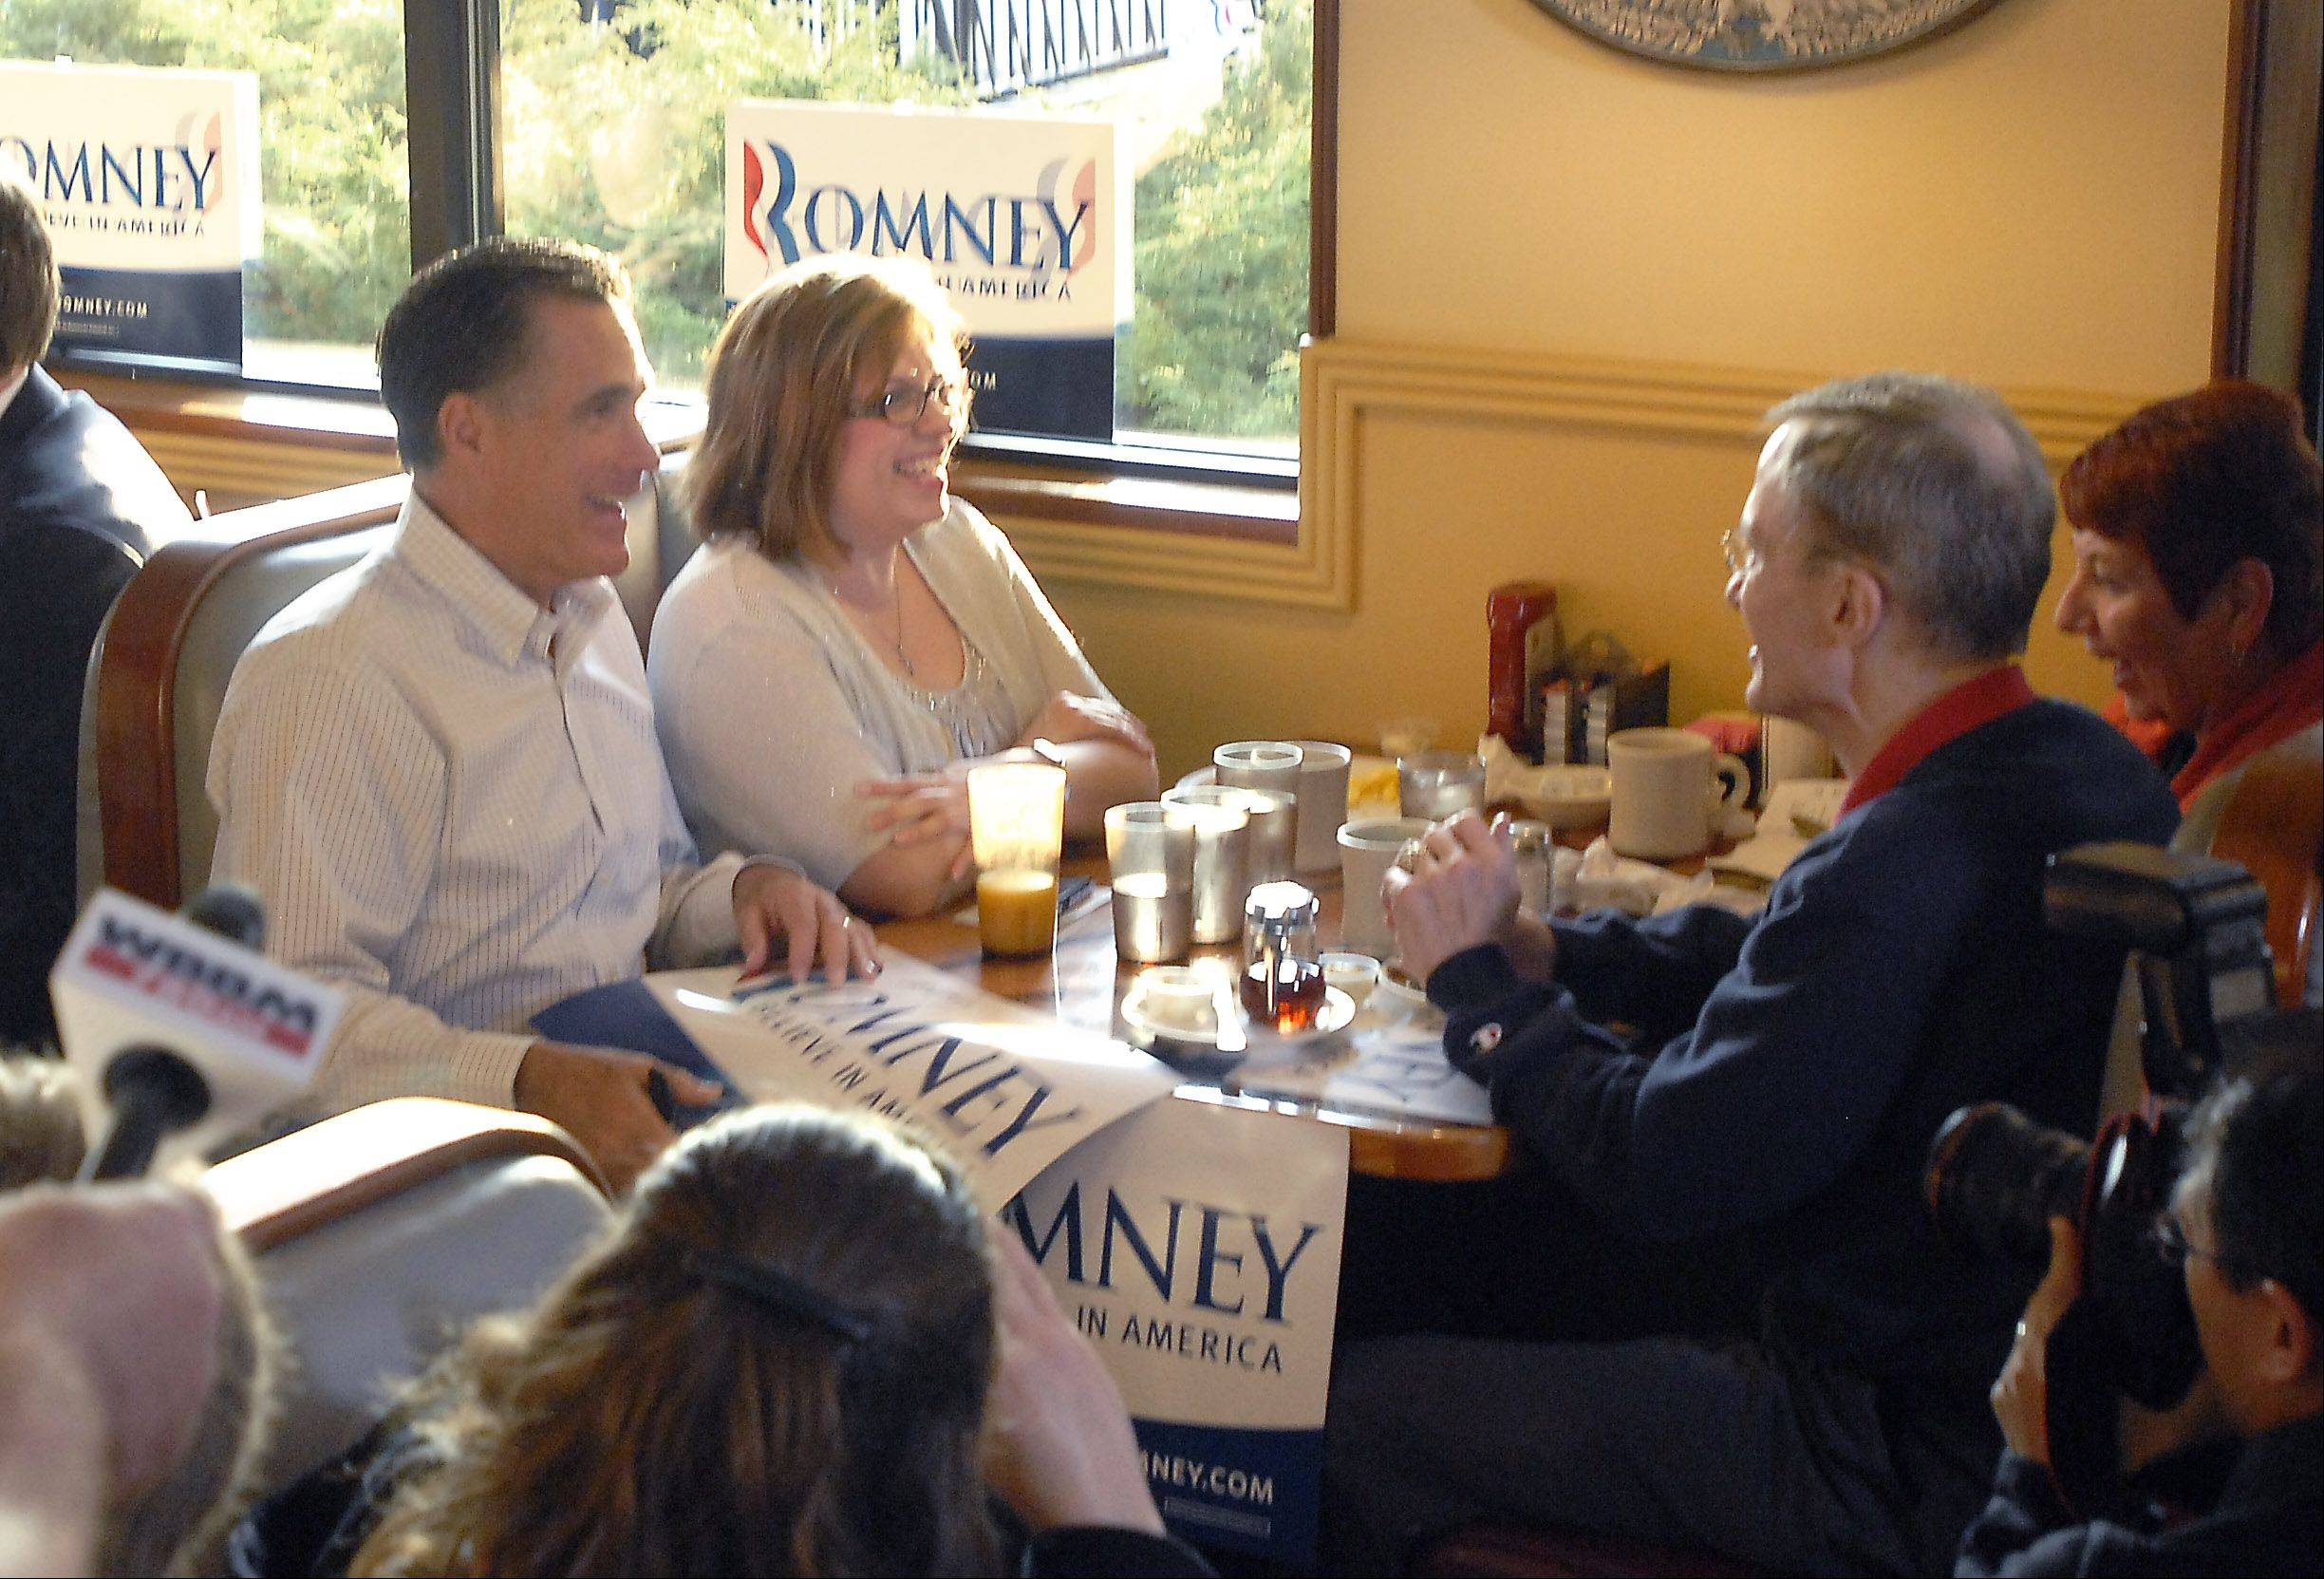 Romney challenges Obama in Rosemont, but doesn't mention Santorum